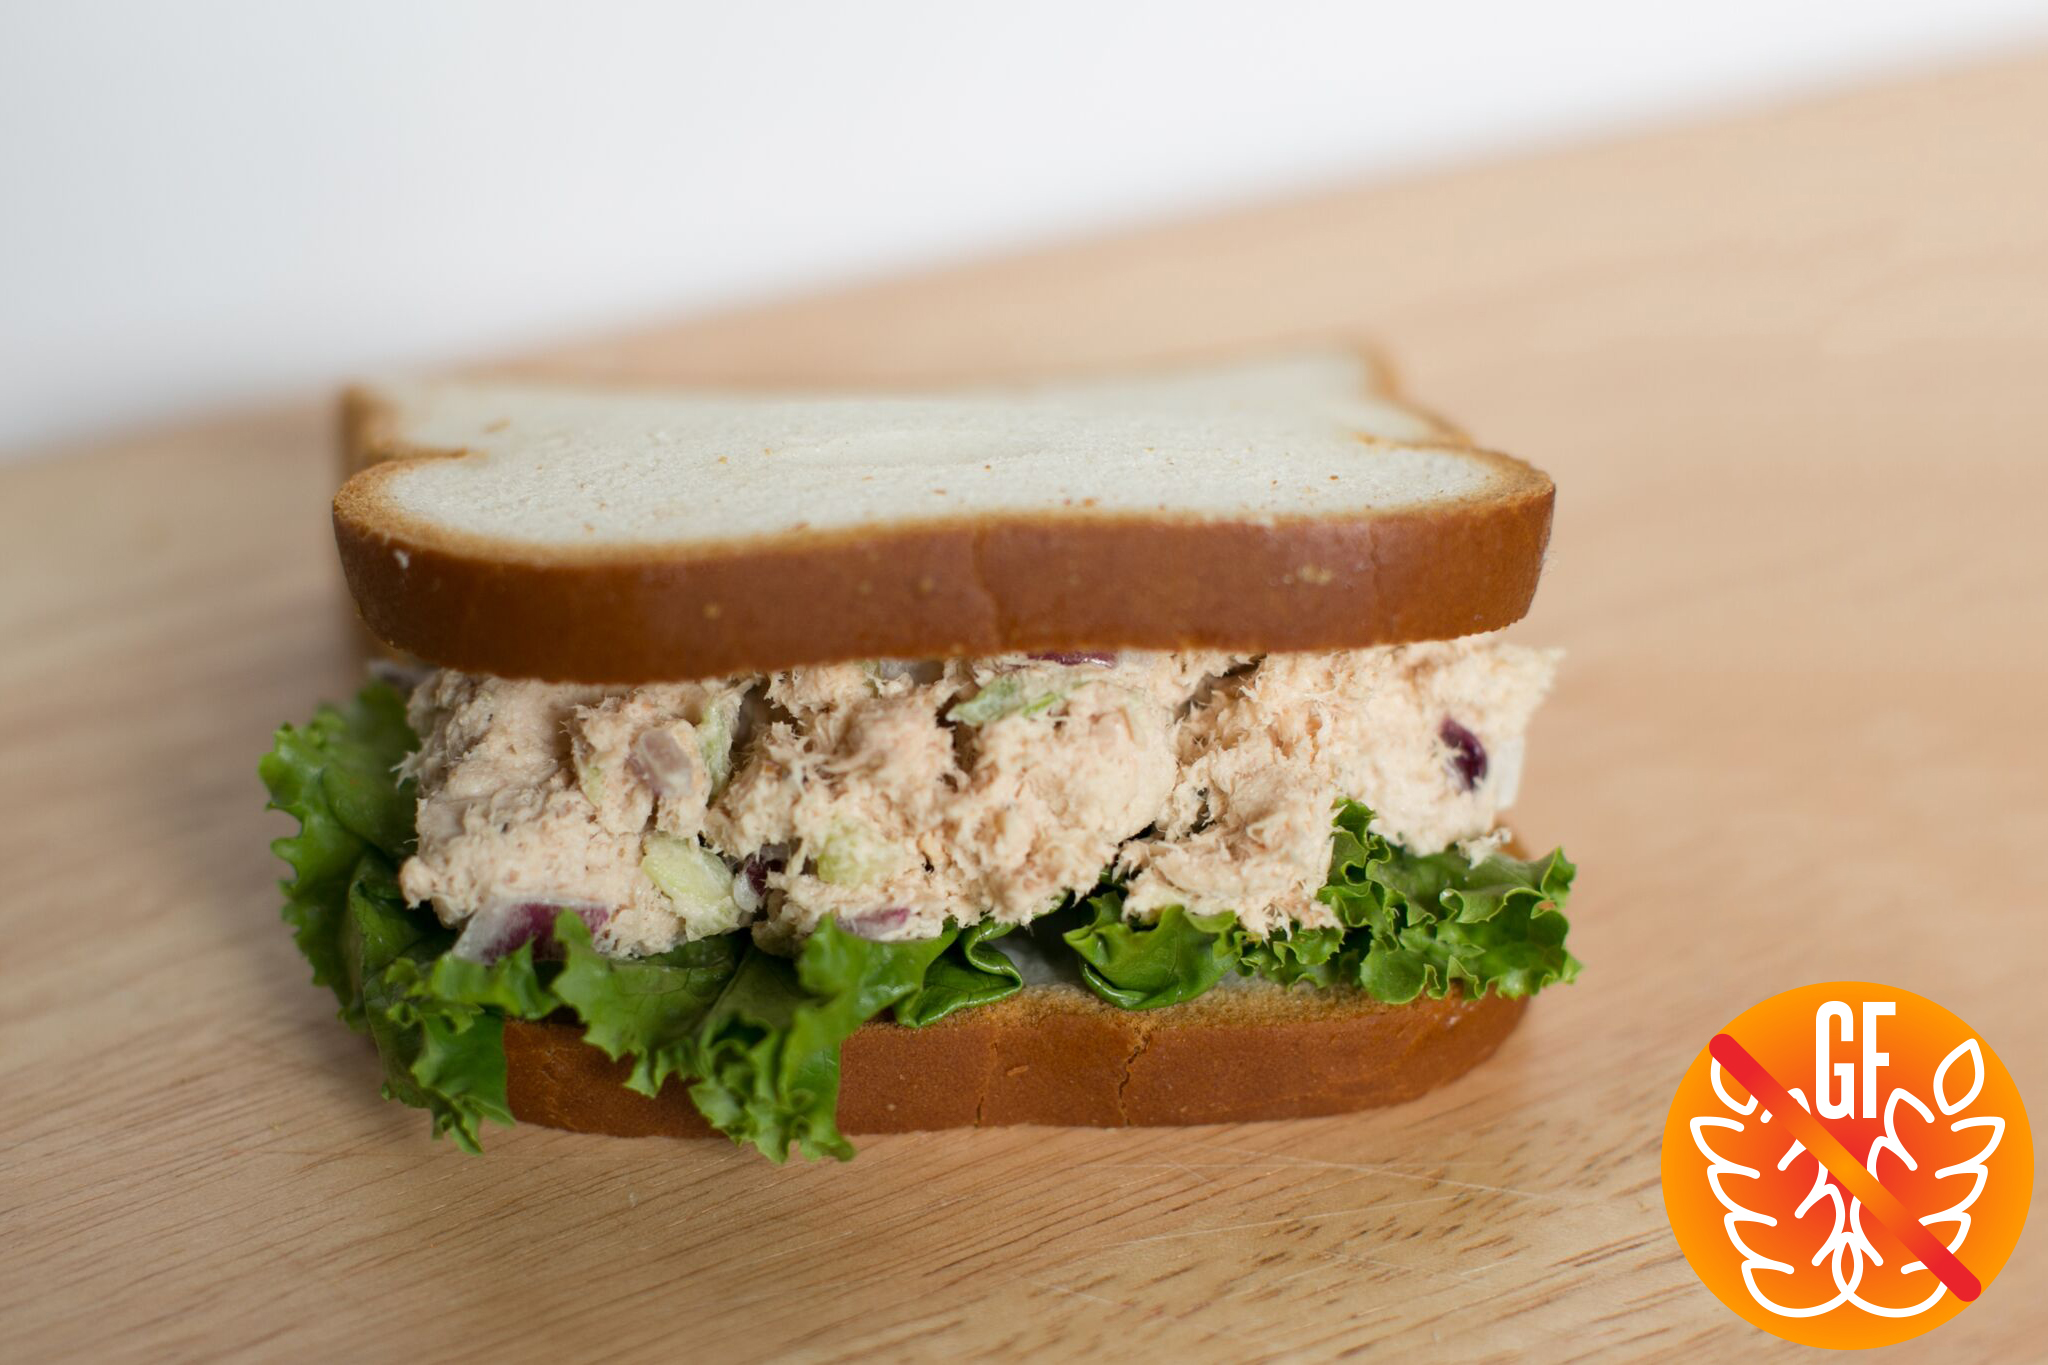 Tuna Salad on Gluten-Free Bread .jpg